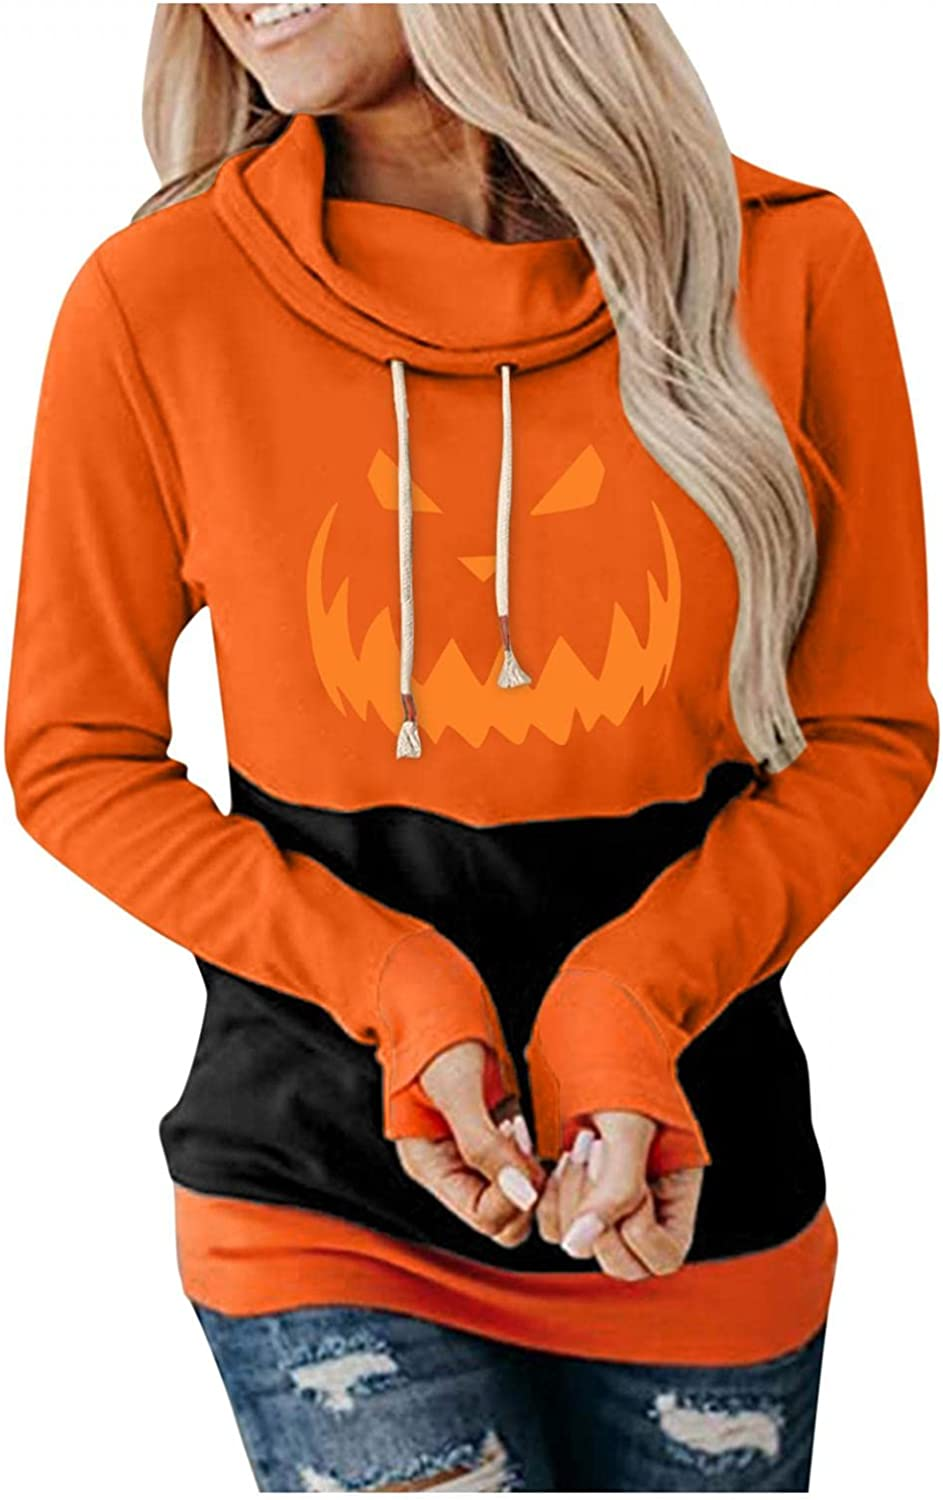 Oiumov Halloween Shirts for Women Off Shoulder Graphic Vintage Pumpkin Face Casual Loose Pullover Tops Sweater Shirts